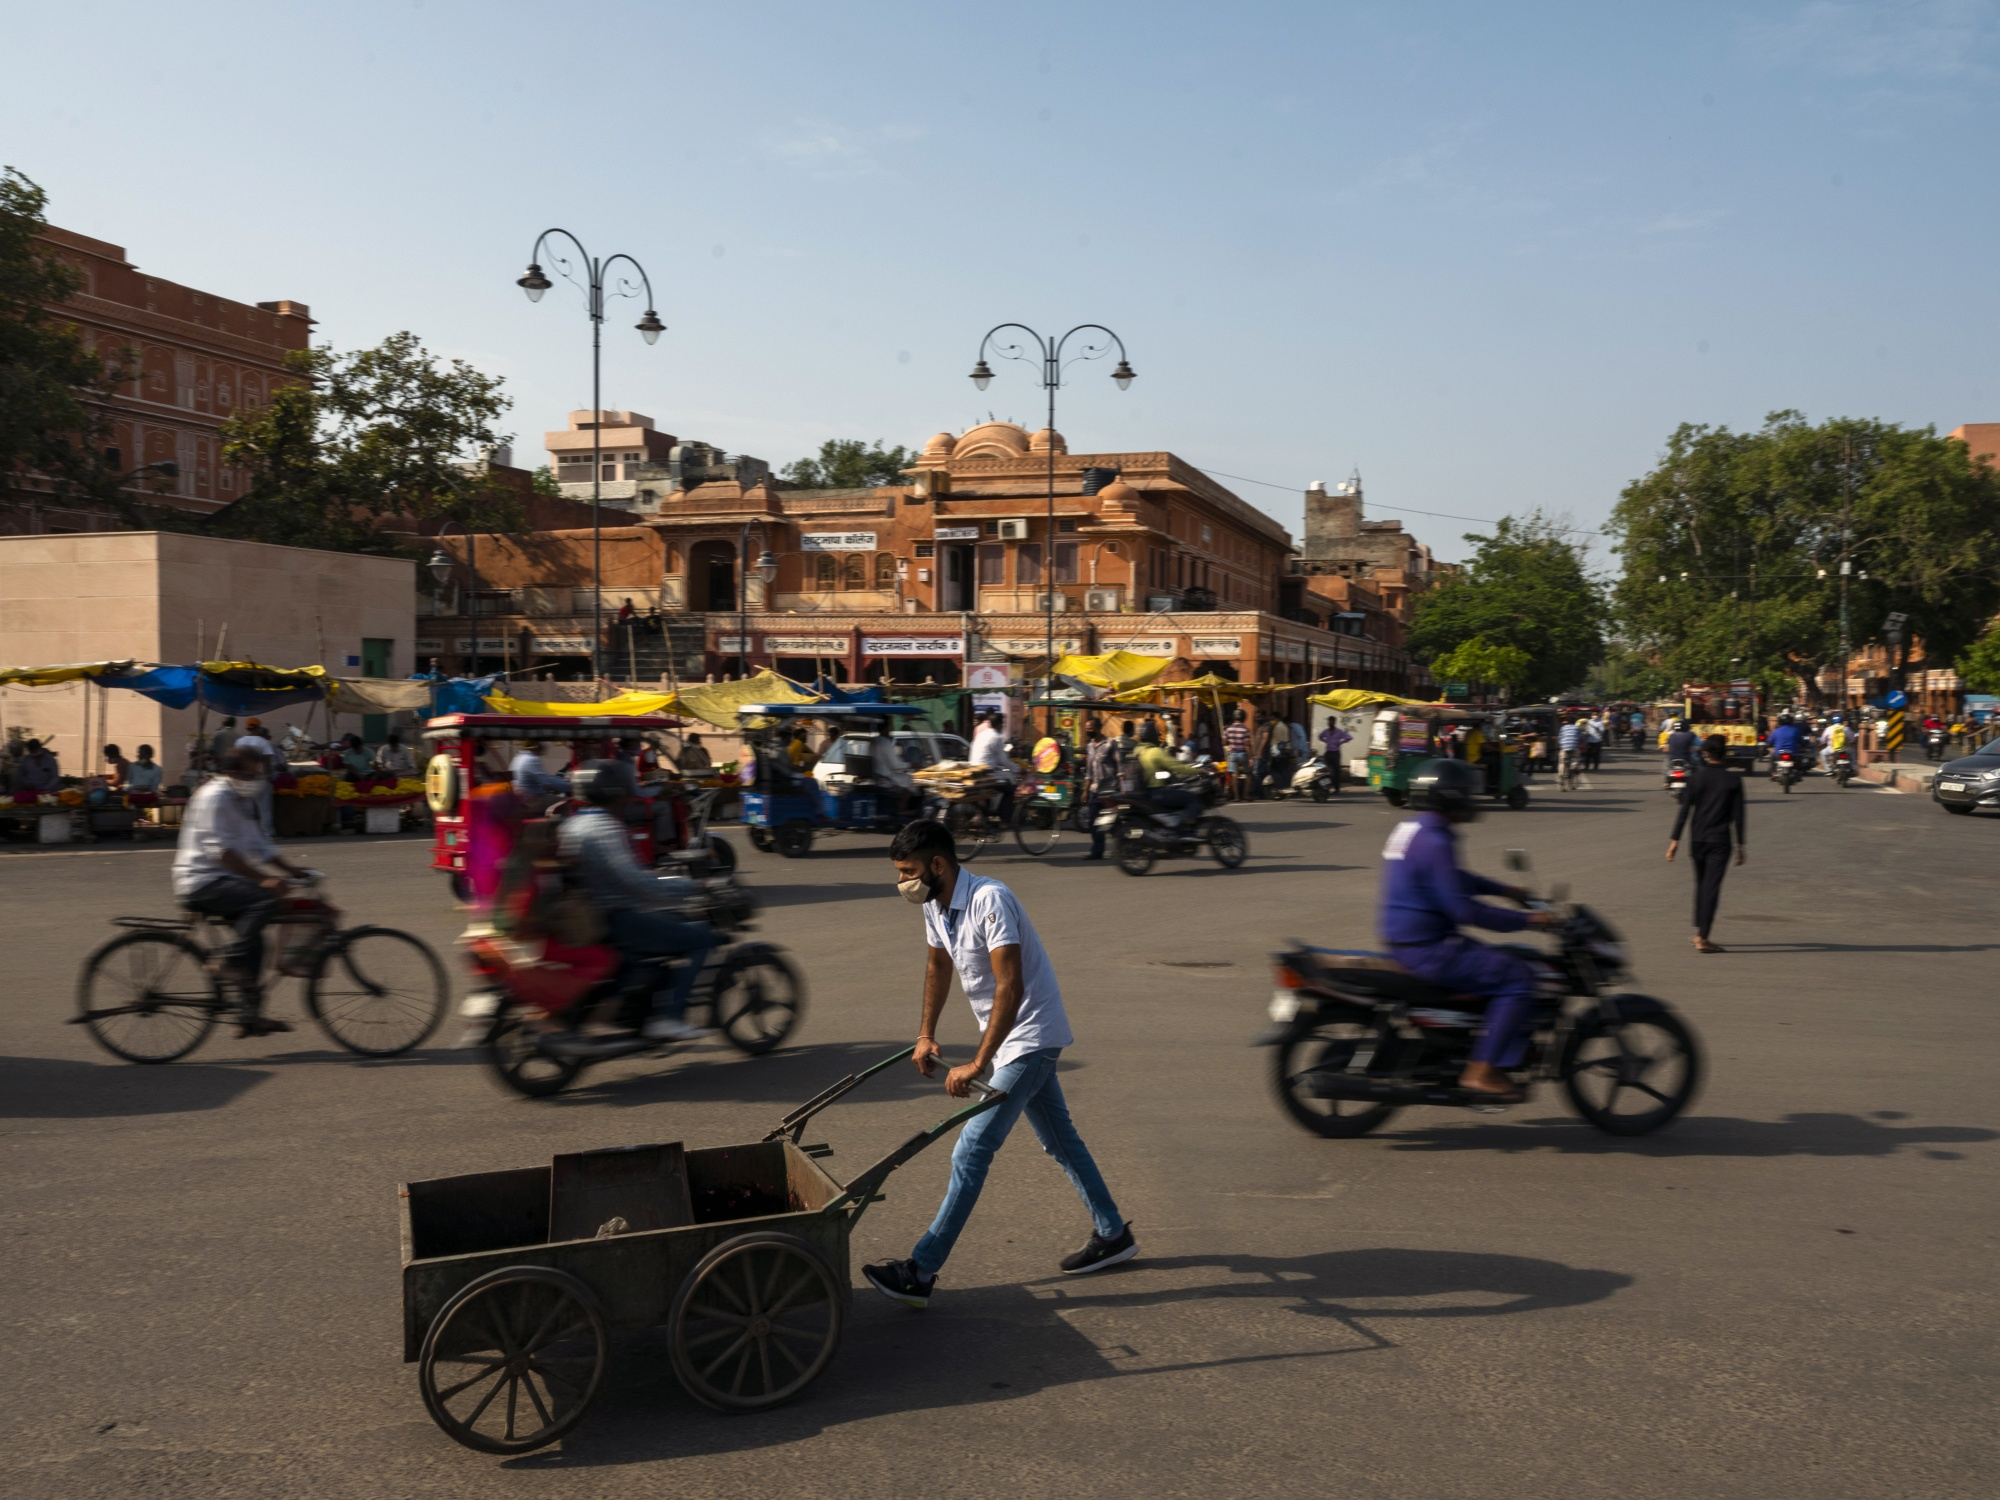 General Economy in Jaipur as India's Central Bank to Retain Dovish Policy